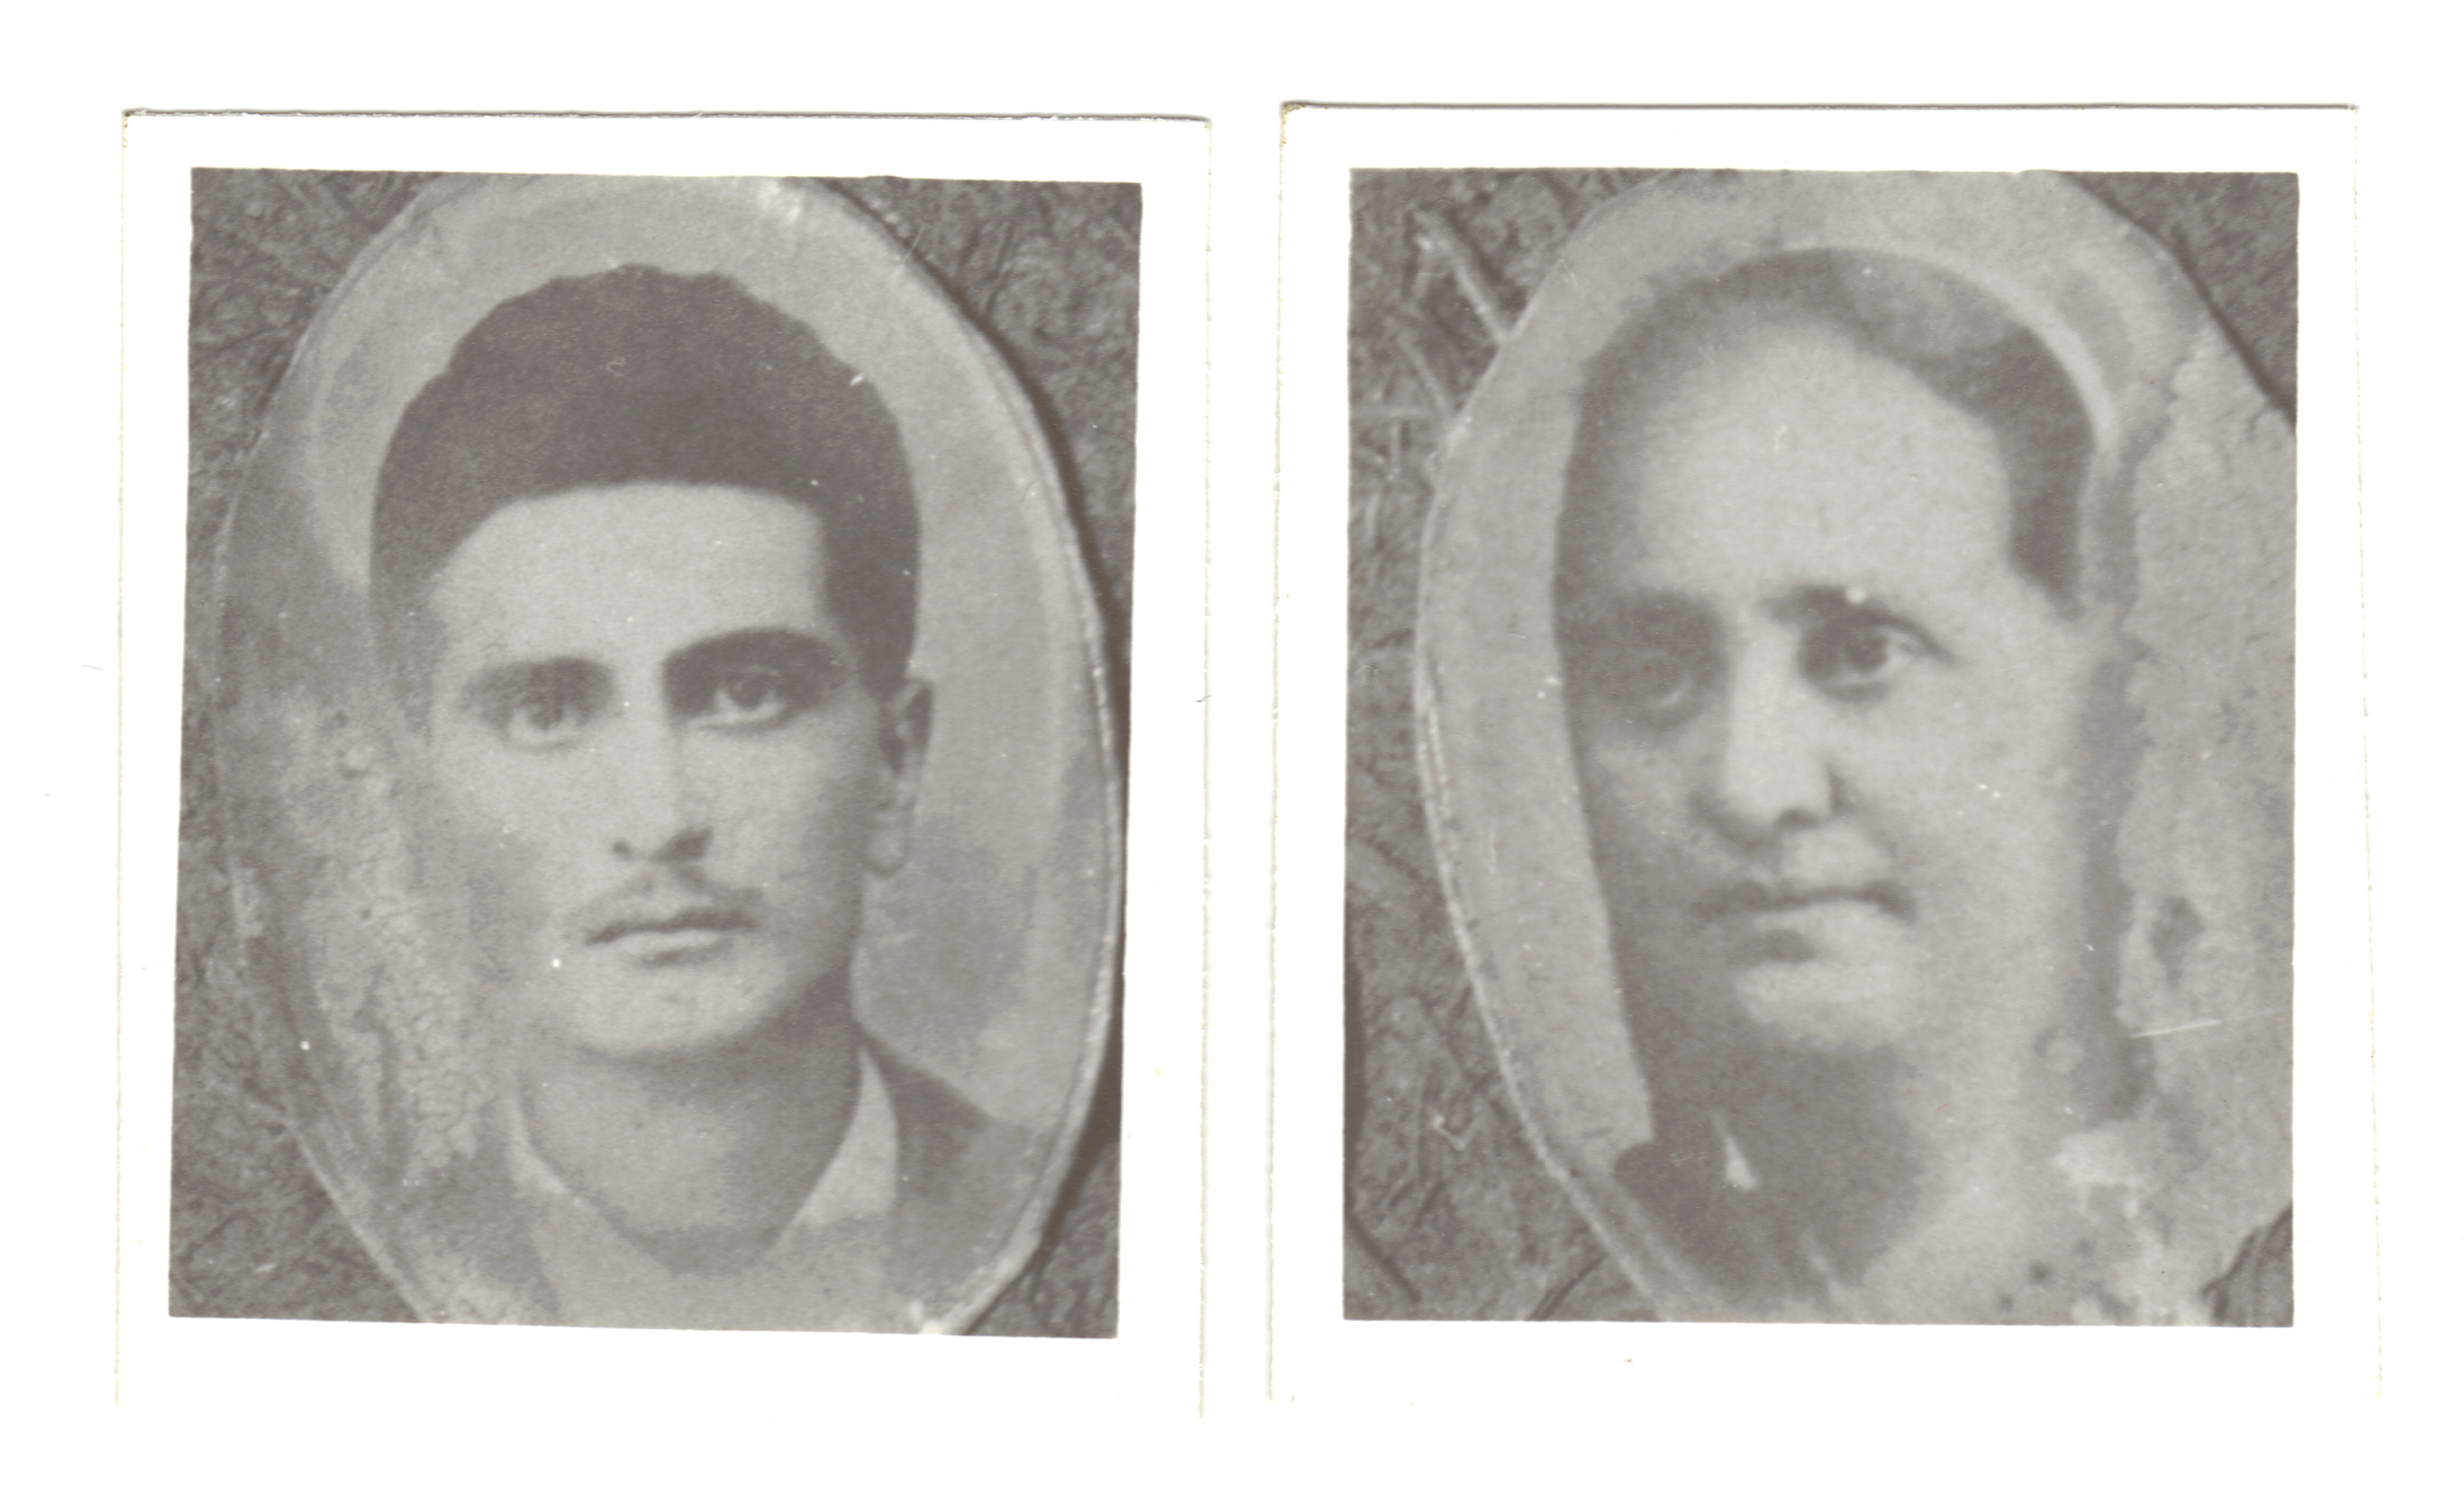 My father's father and mother: Jehangir and Shera Irani. She's an amazingly courageous woman, too.